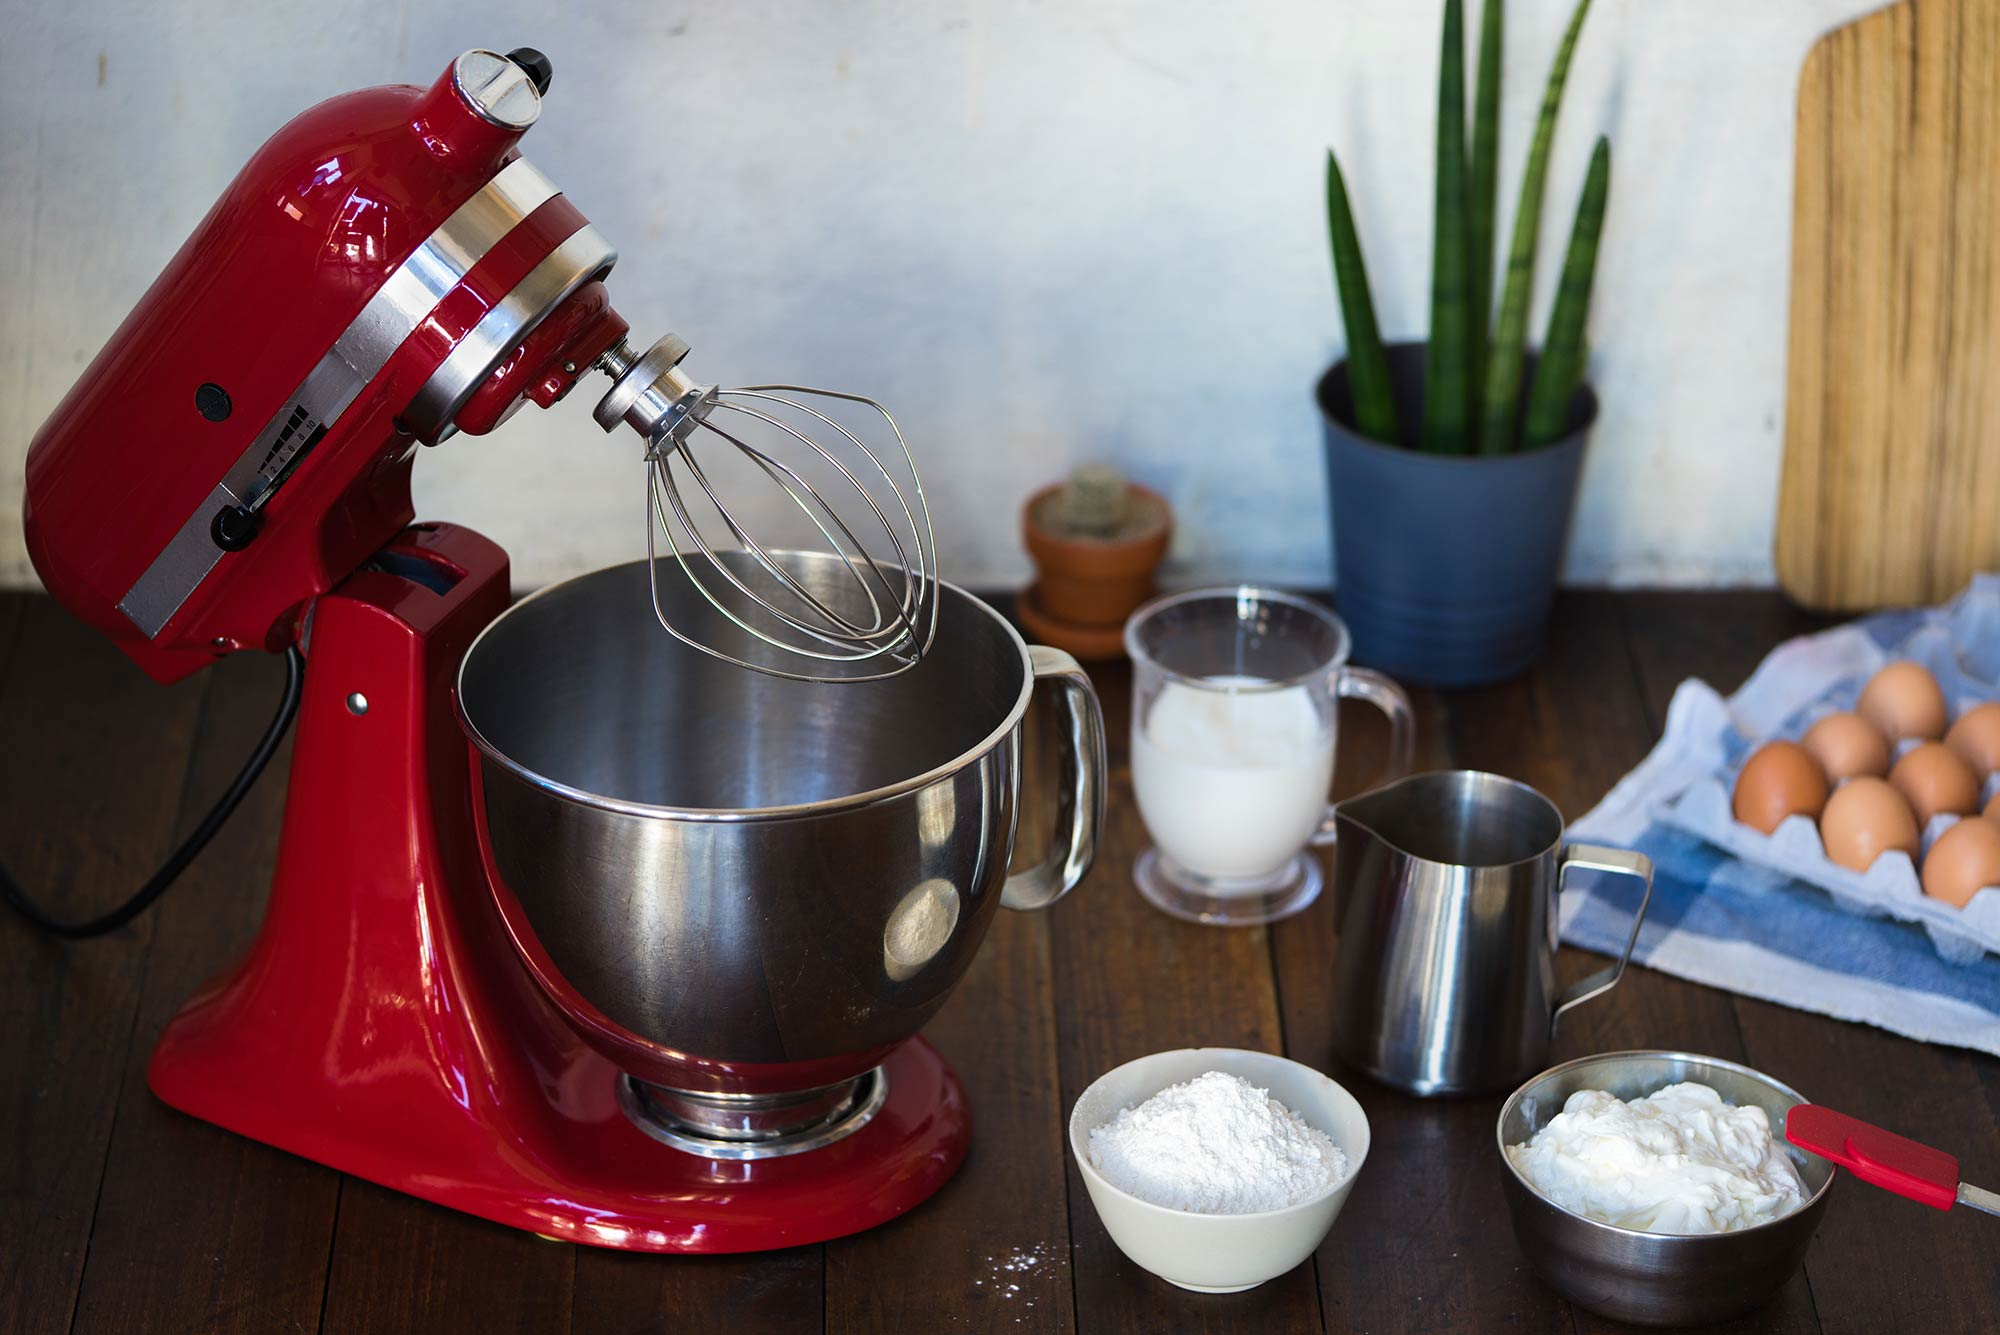 Red stand mixer on a countertop